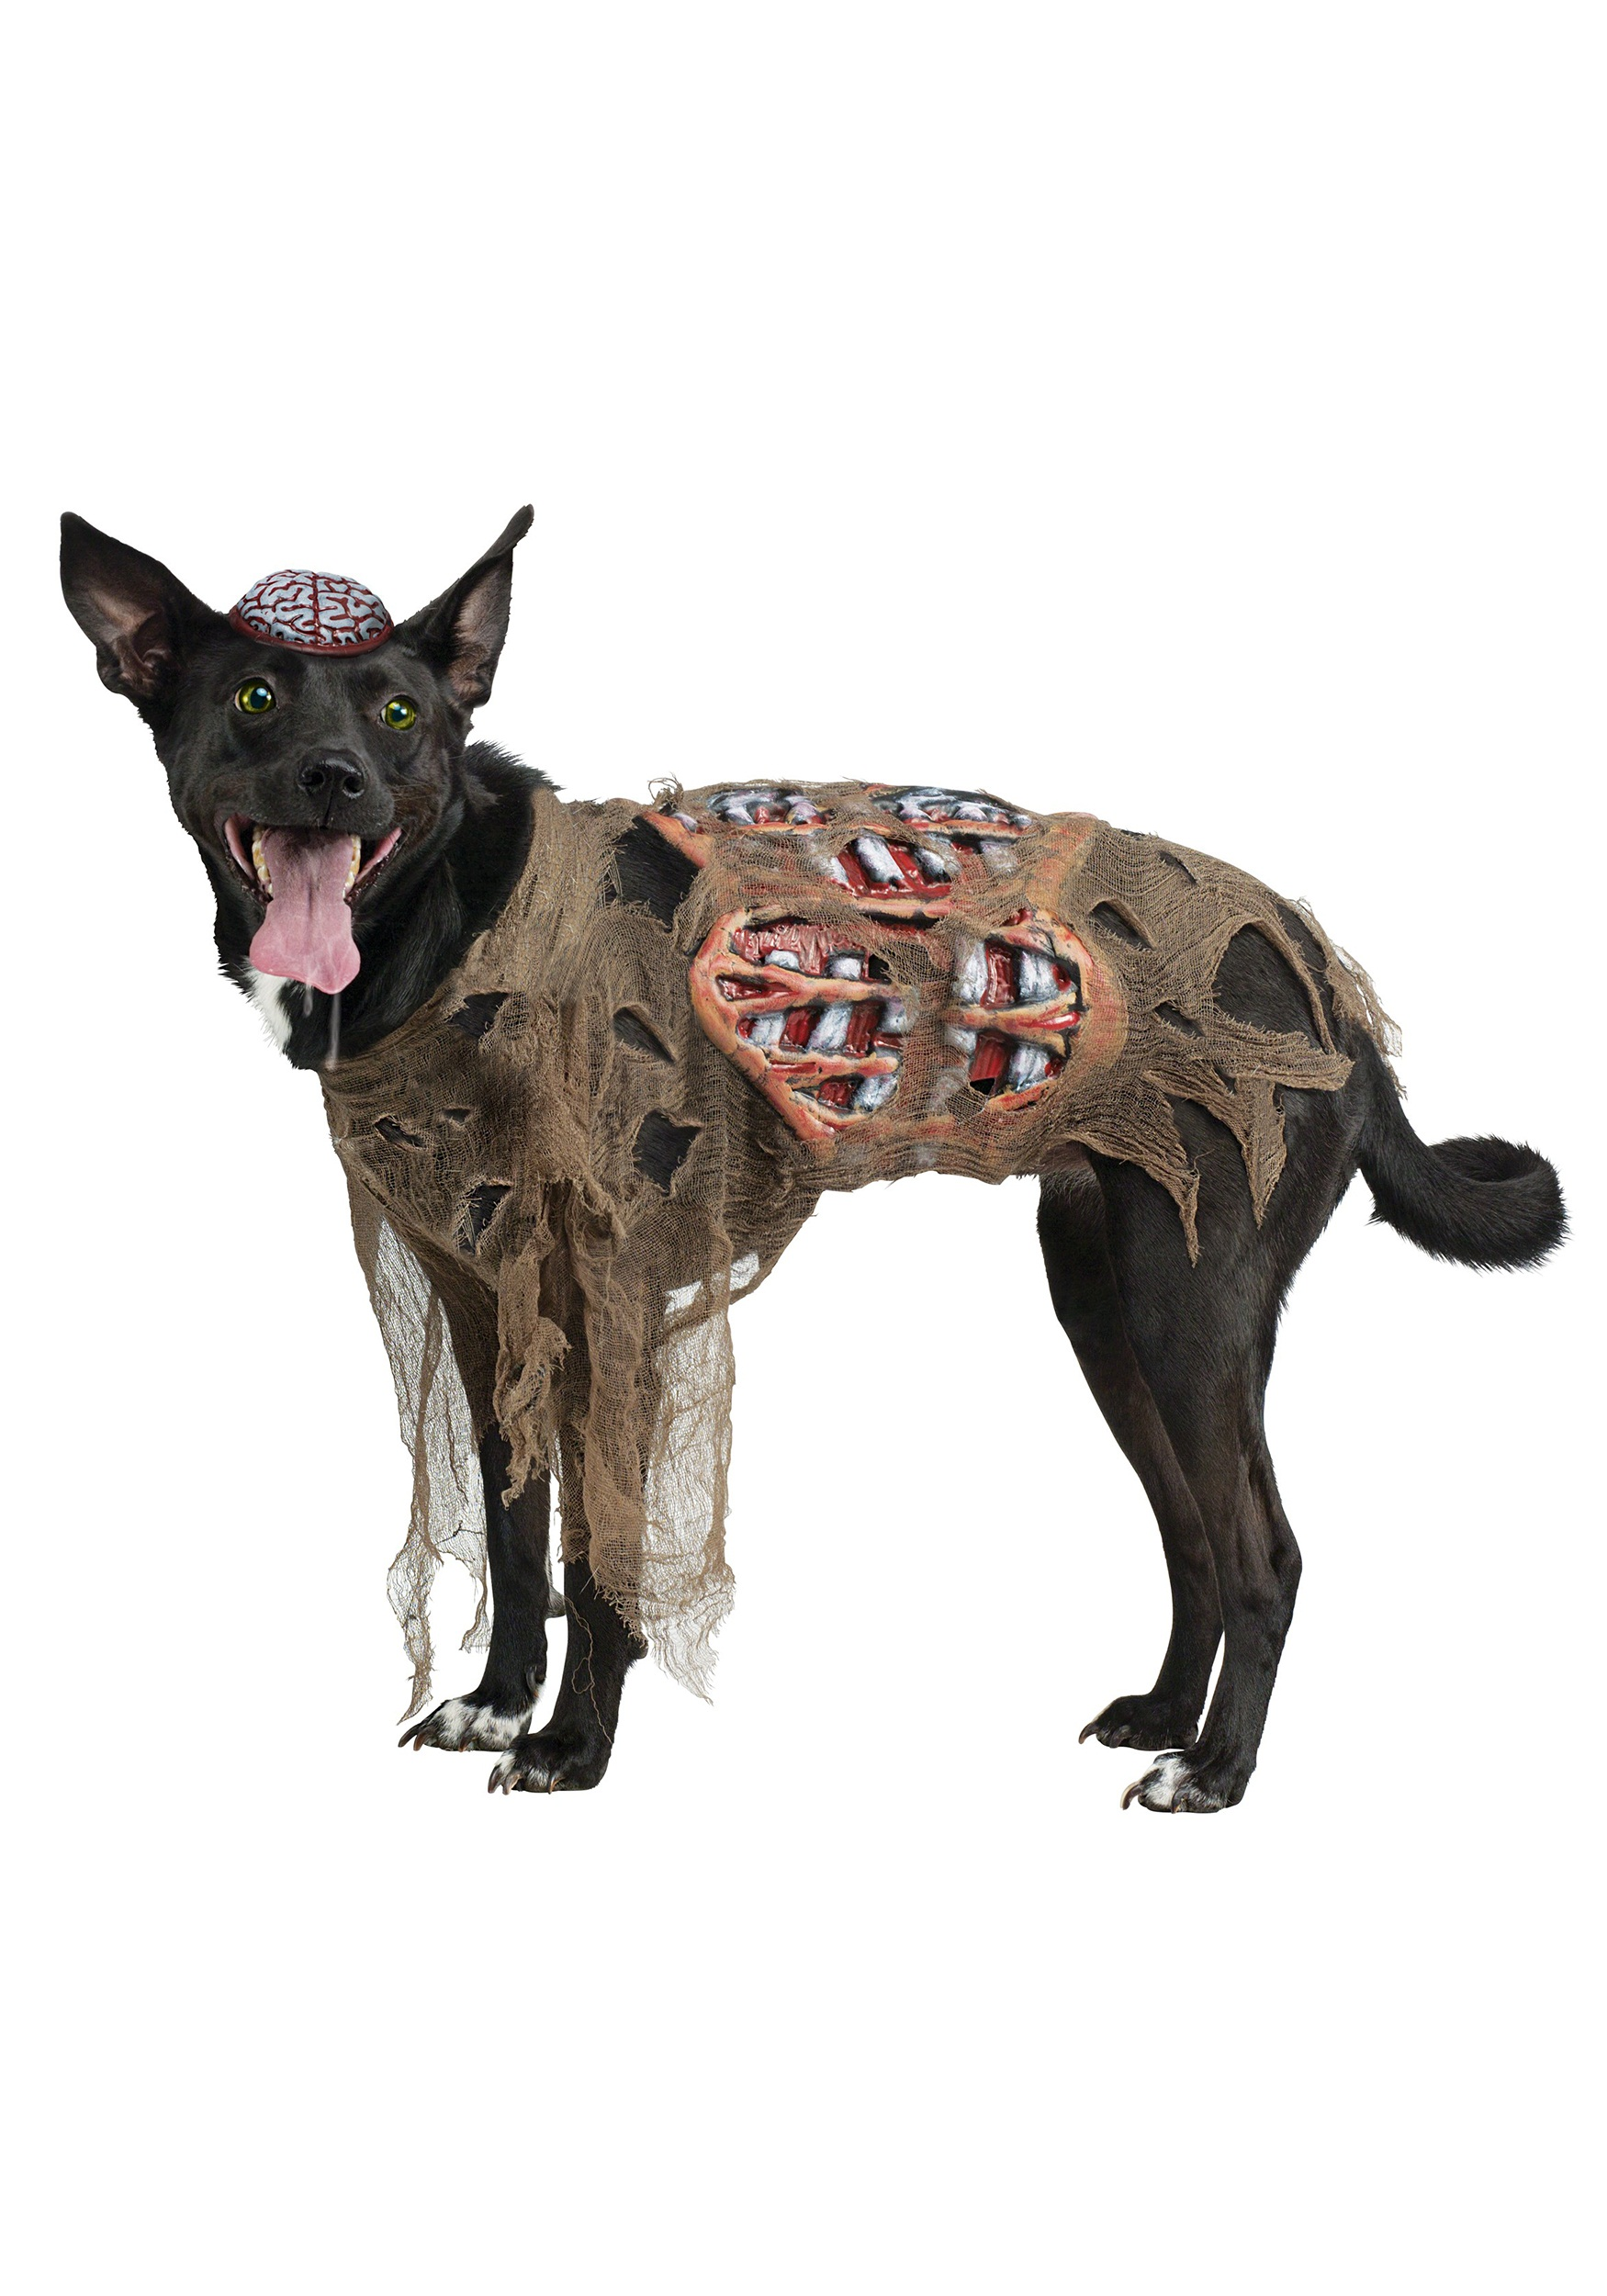 Homemade Costumes for Pets - Costume Works (page 2/64) |Diy Zombie Dog Costumes